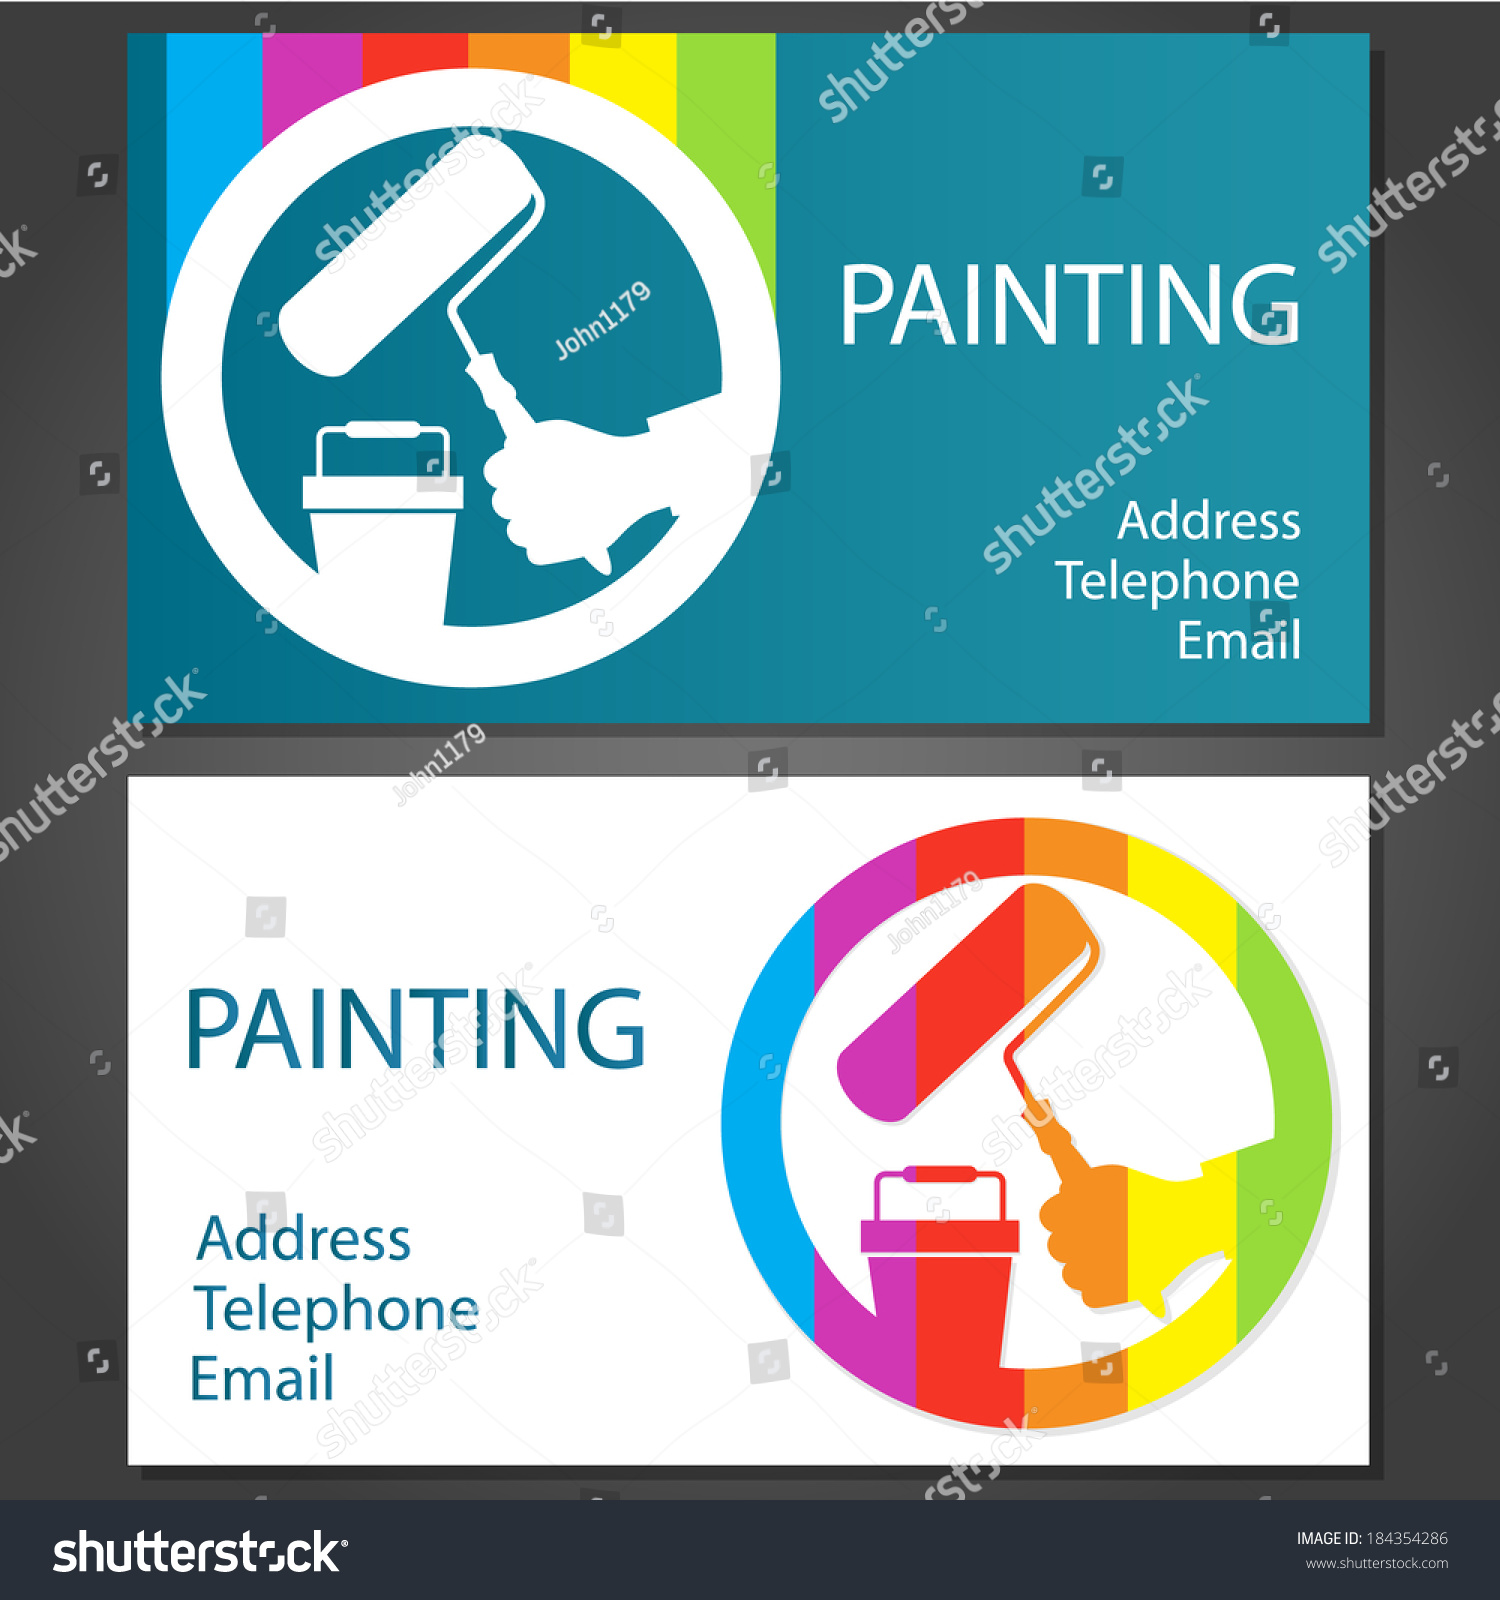 Design Business Cards Painting Business Vector Stock Vector